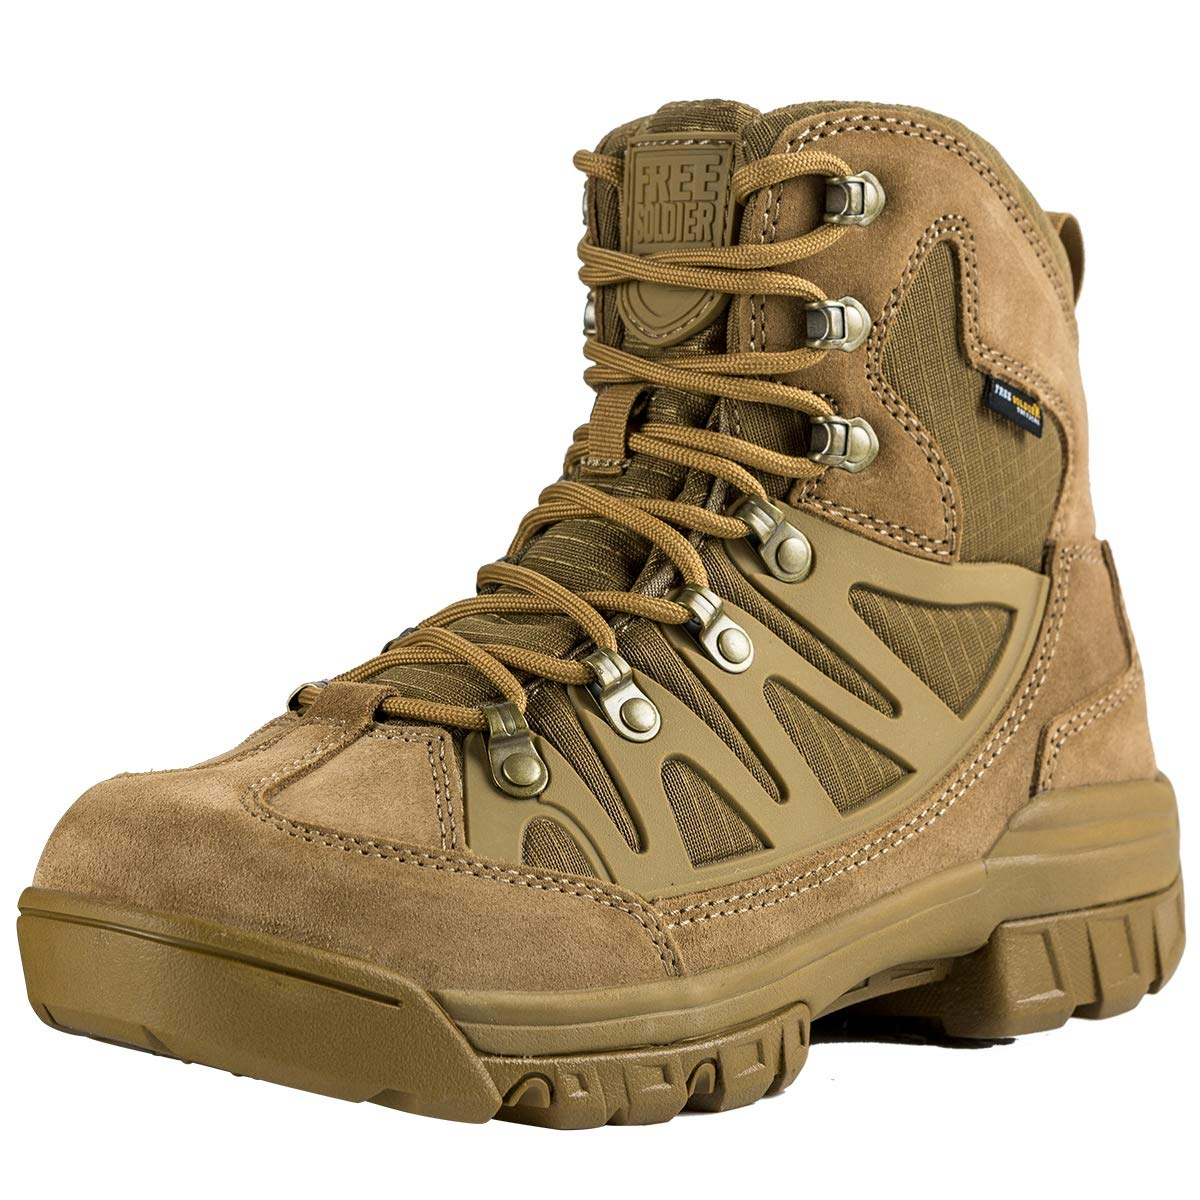 FREE SOLDIER Outdoor Men's Tactical Military Combat Ankle Boots Water Resistant Ligtweight Mid Hiking Boots (Coyote Brown, 9 US) by FREE SOLDIER